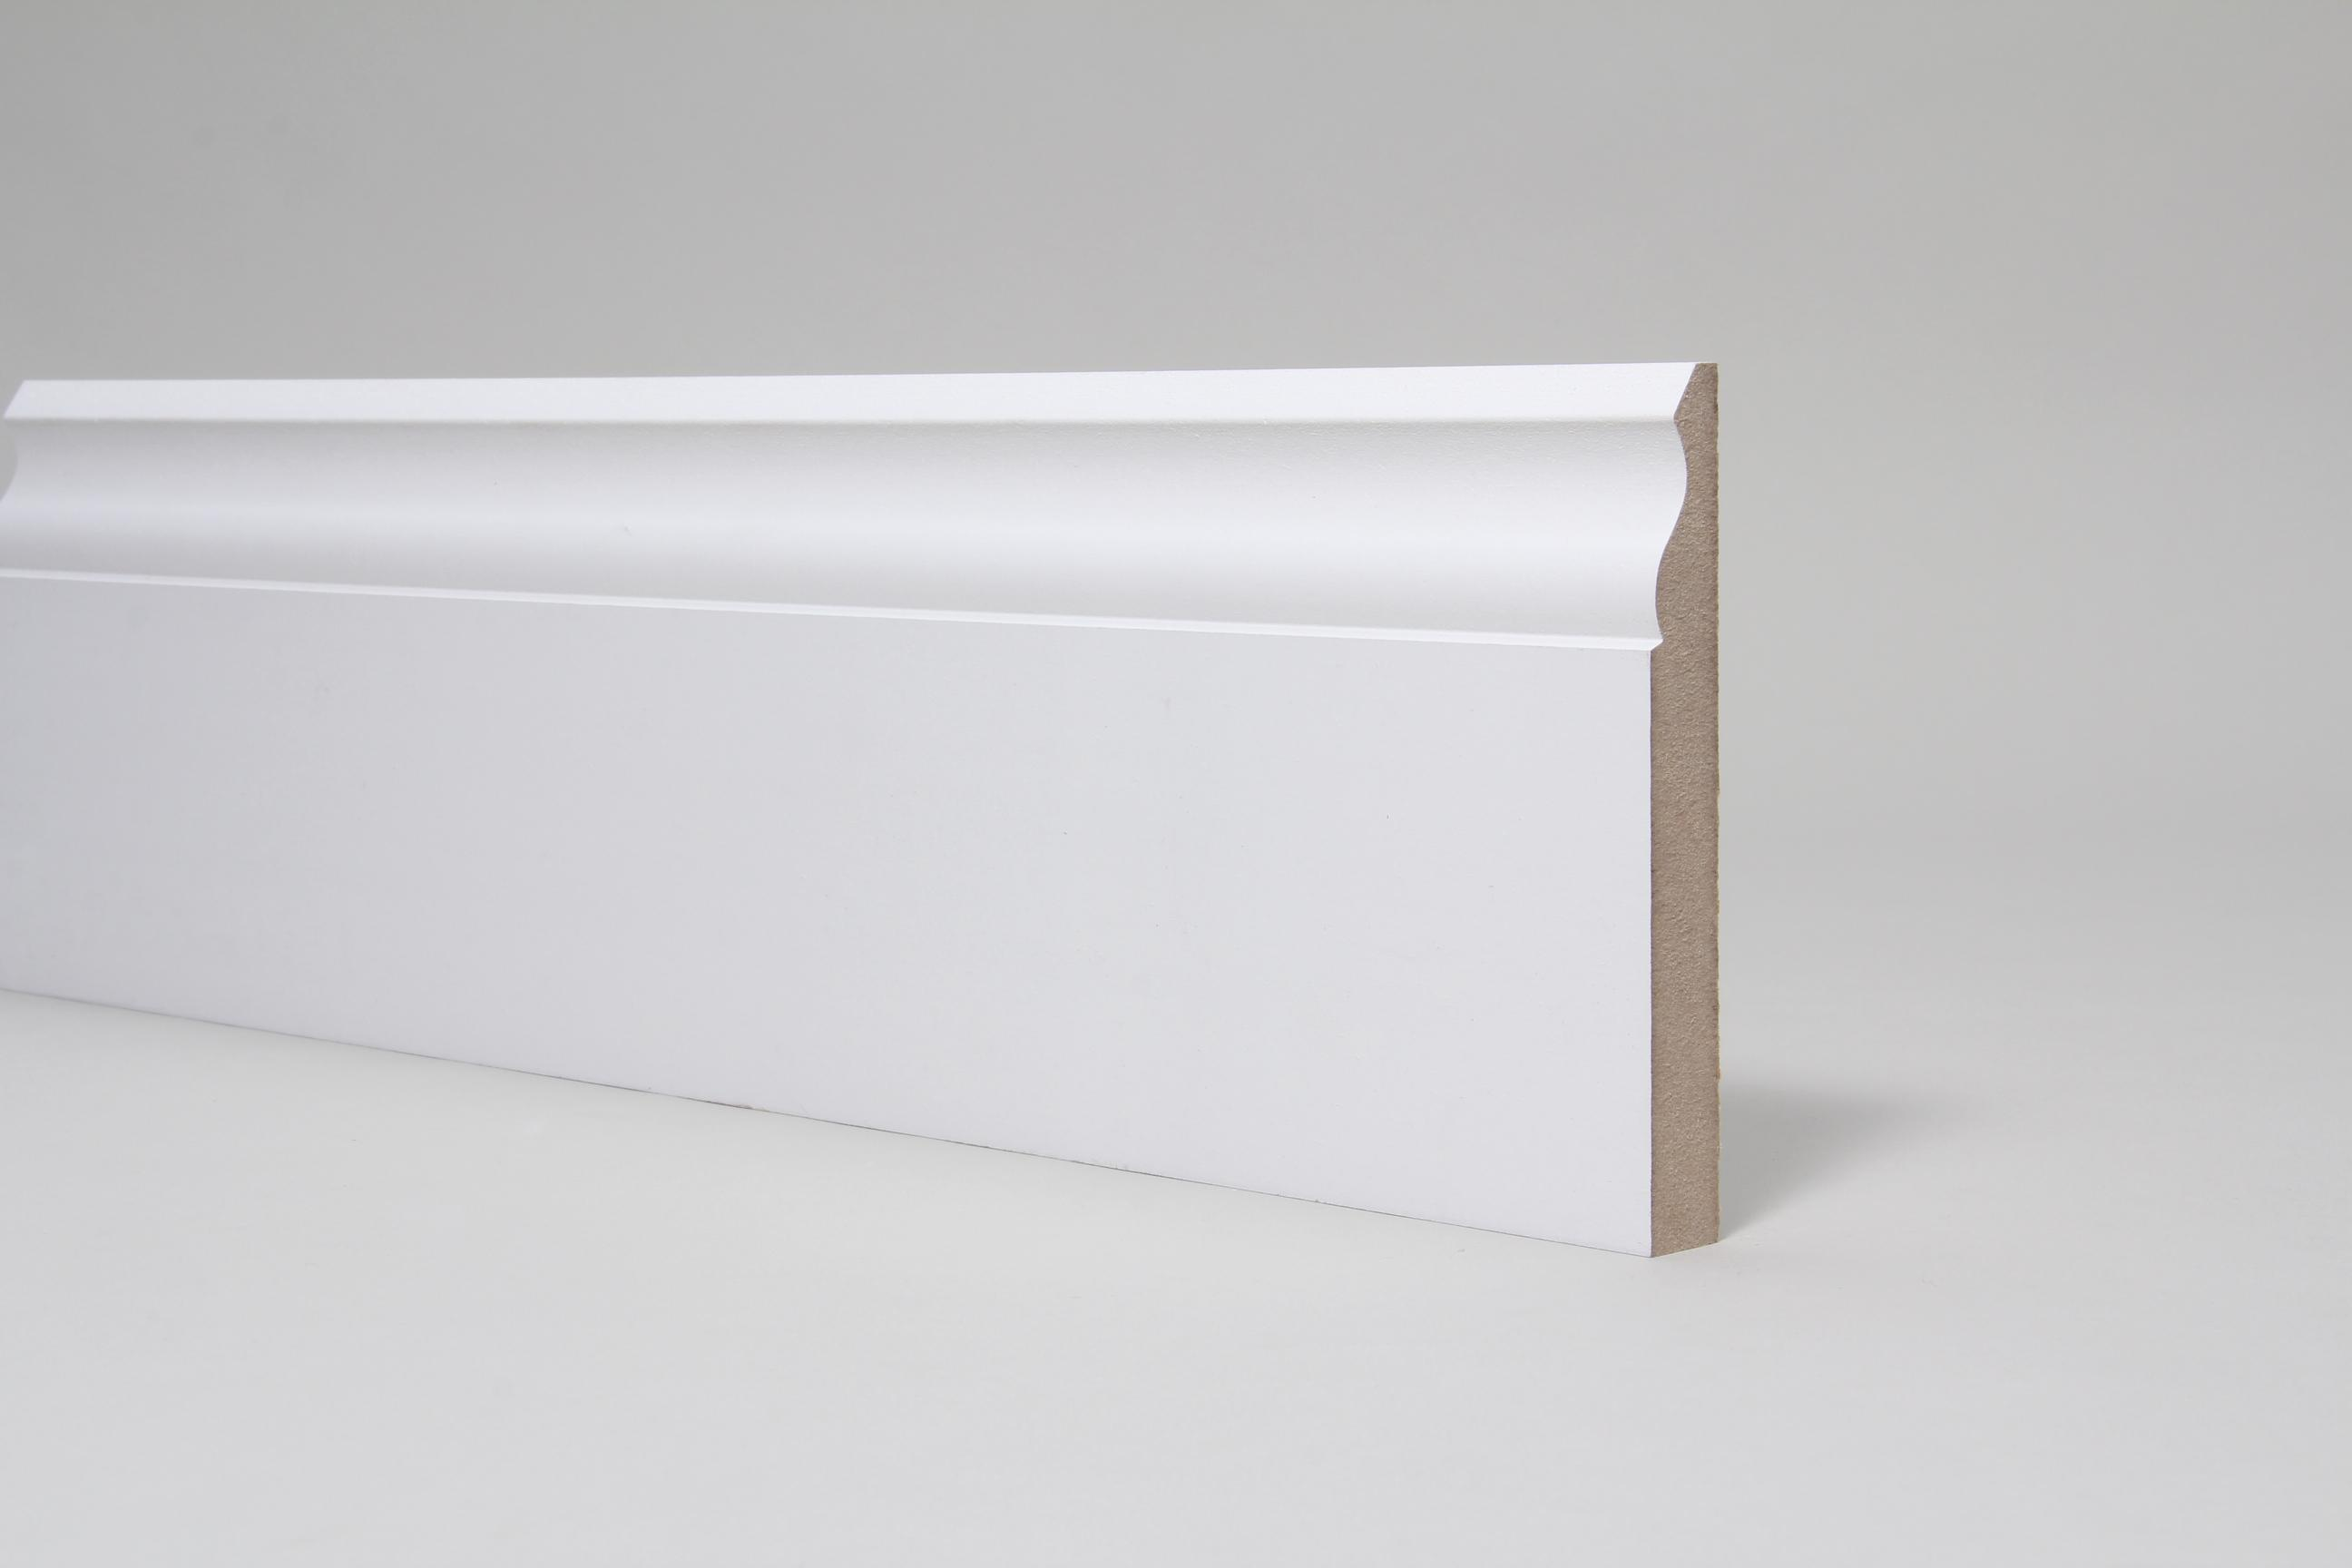 Ogee 18mm x 144mm x 4.4 Mtr Primed